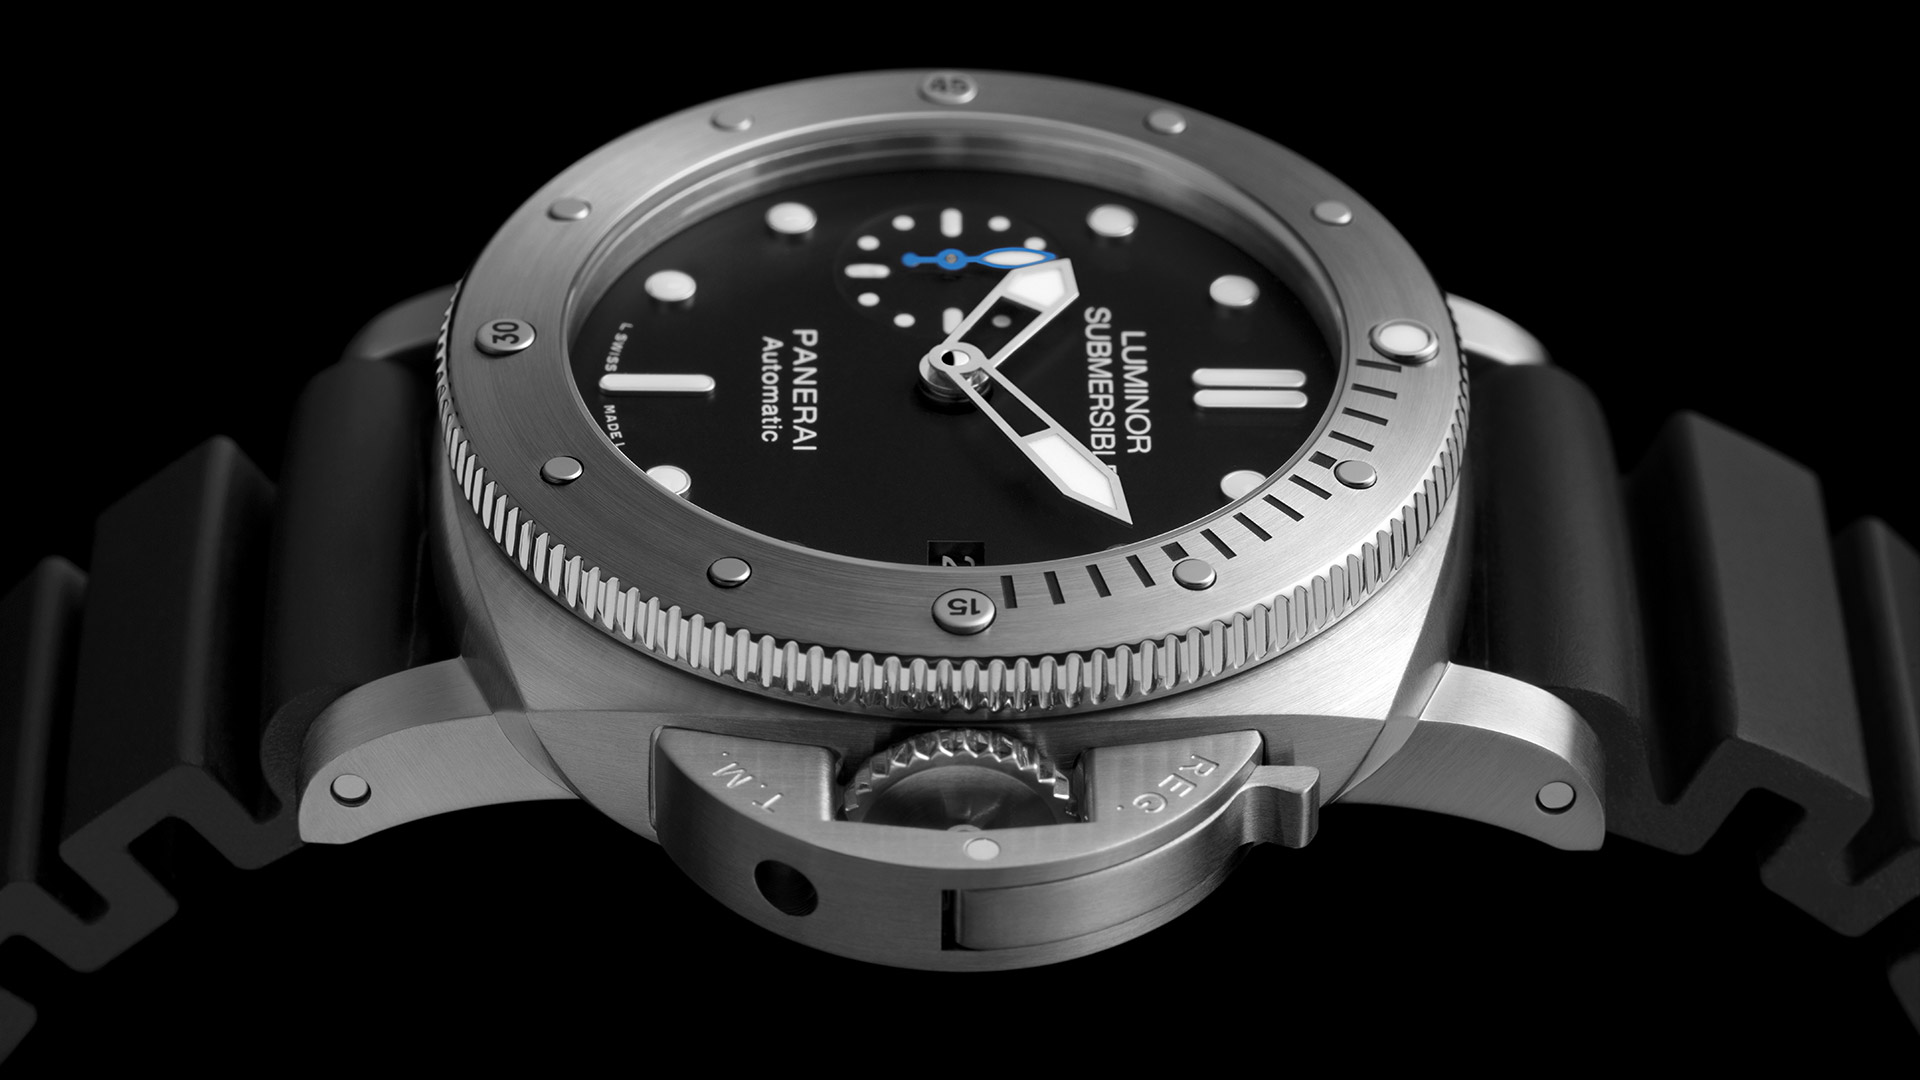 PANERAI LUMINOR SUBMERSIBLE 1950™ - 3 DAYS AUTOMATIC 42 mm - PAM00682